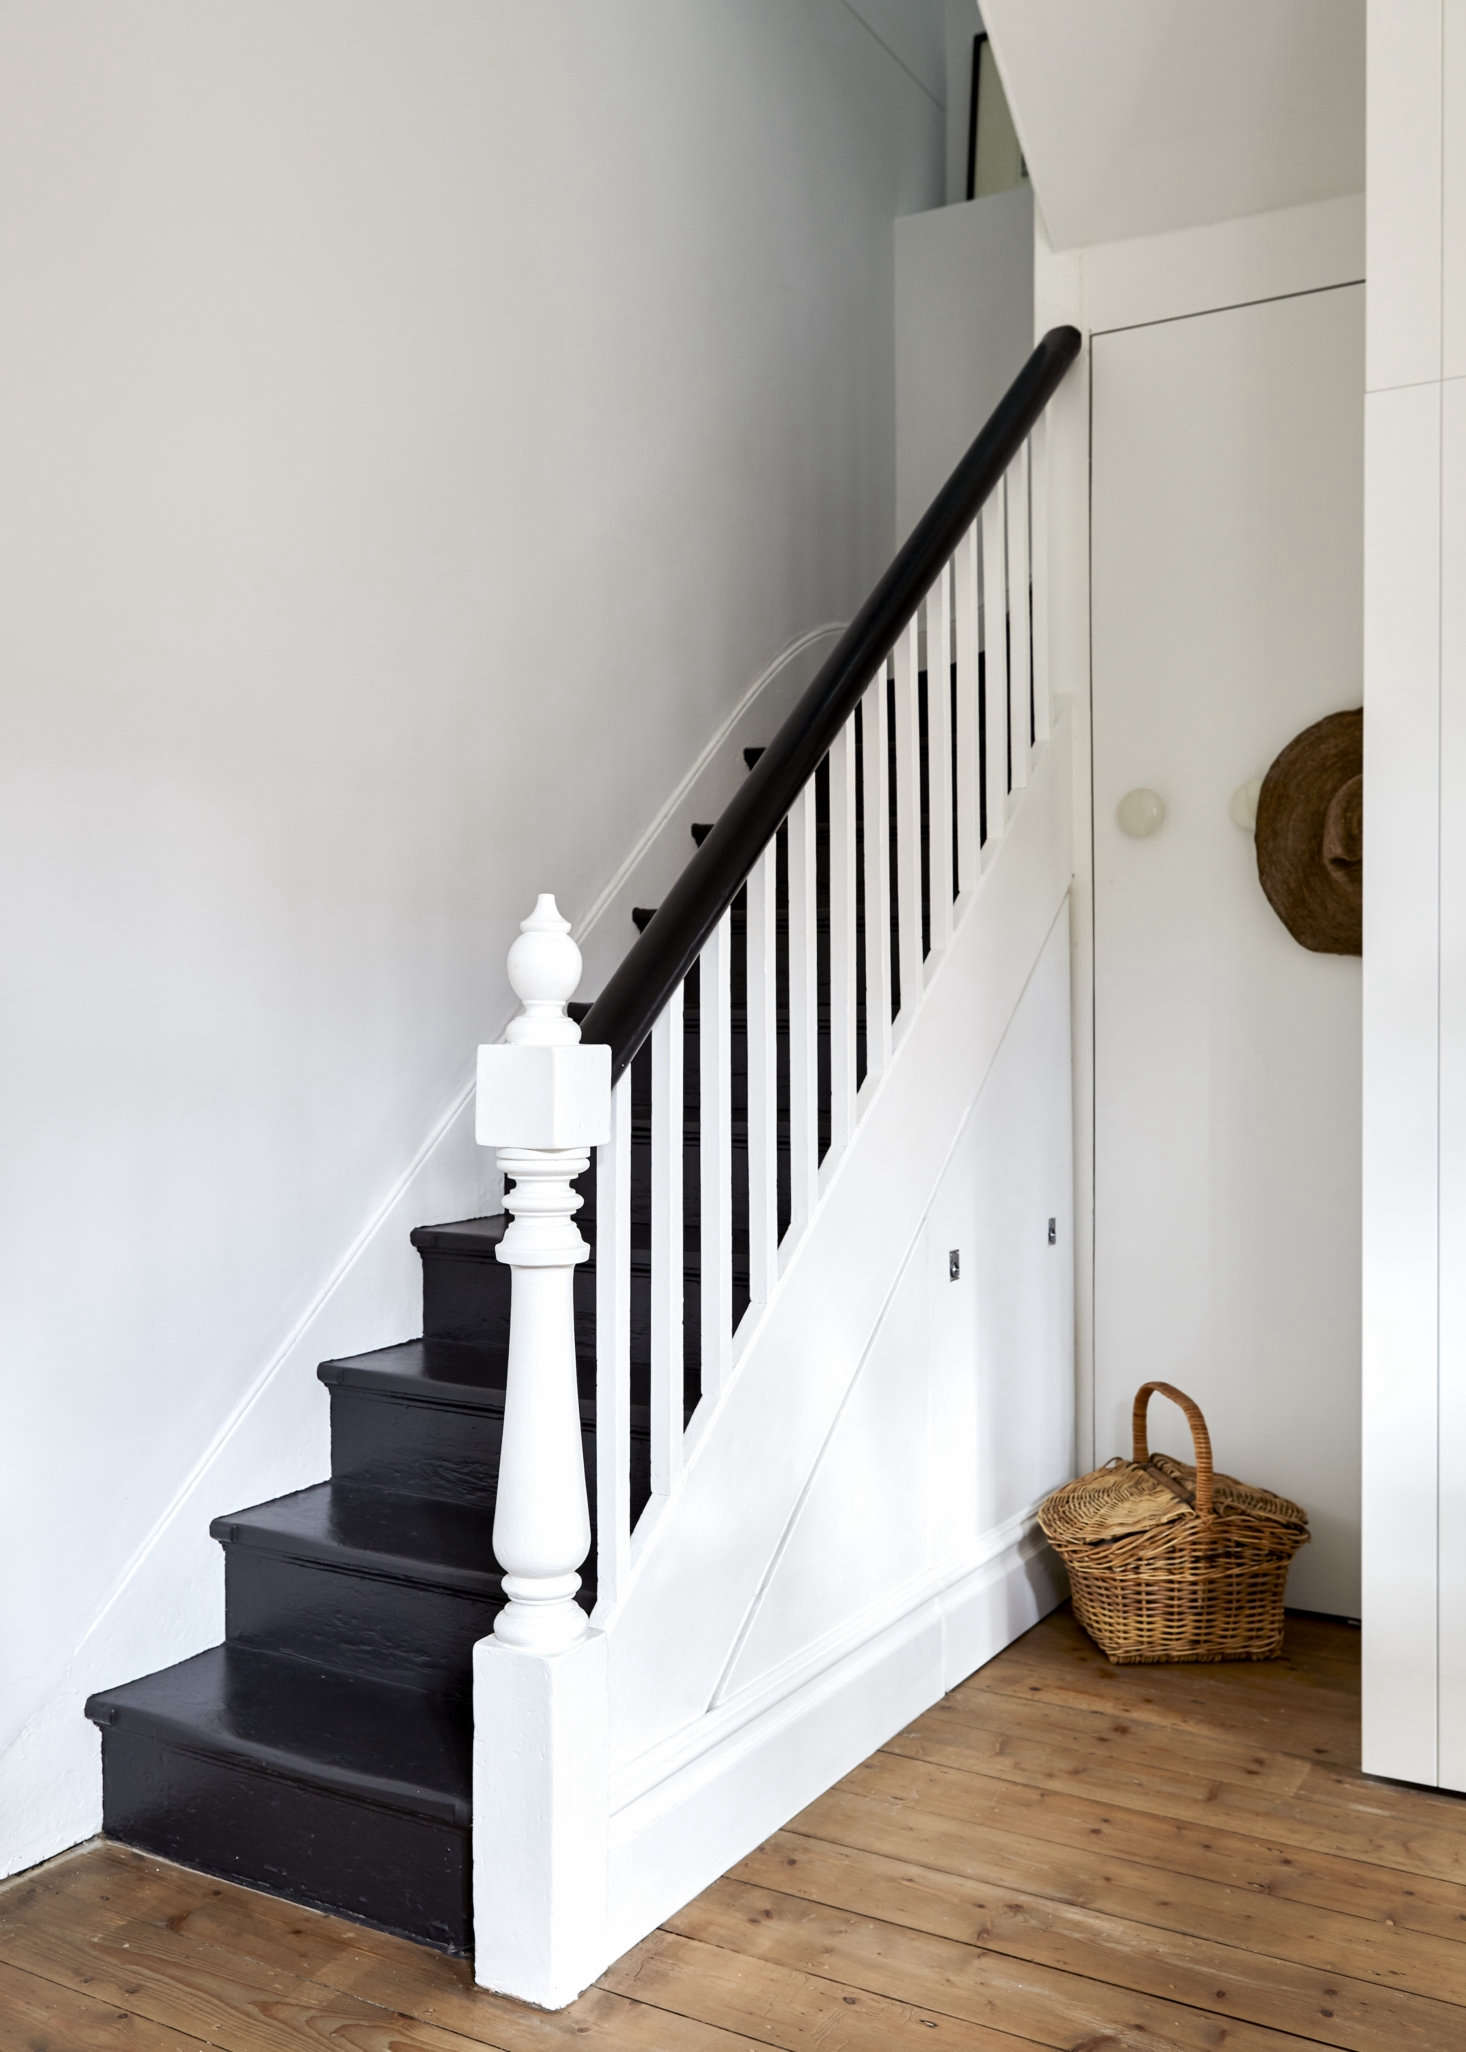 The interior had been largely stripped of original detailing and lacked a kitchen, but the entry retained its original stair and Baltic pine floor, which was replicated elsewhere. (Scroll down to see some Before shots.)Whiting used the space under the stairwell for &#8